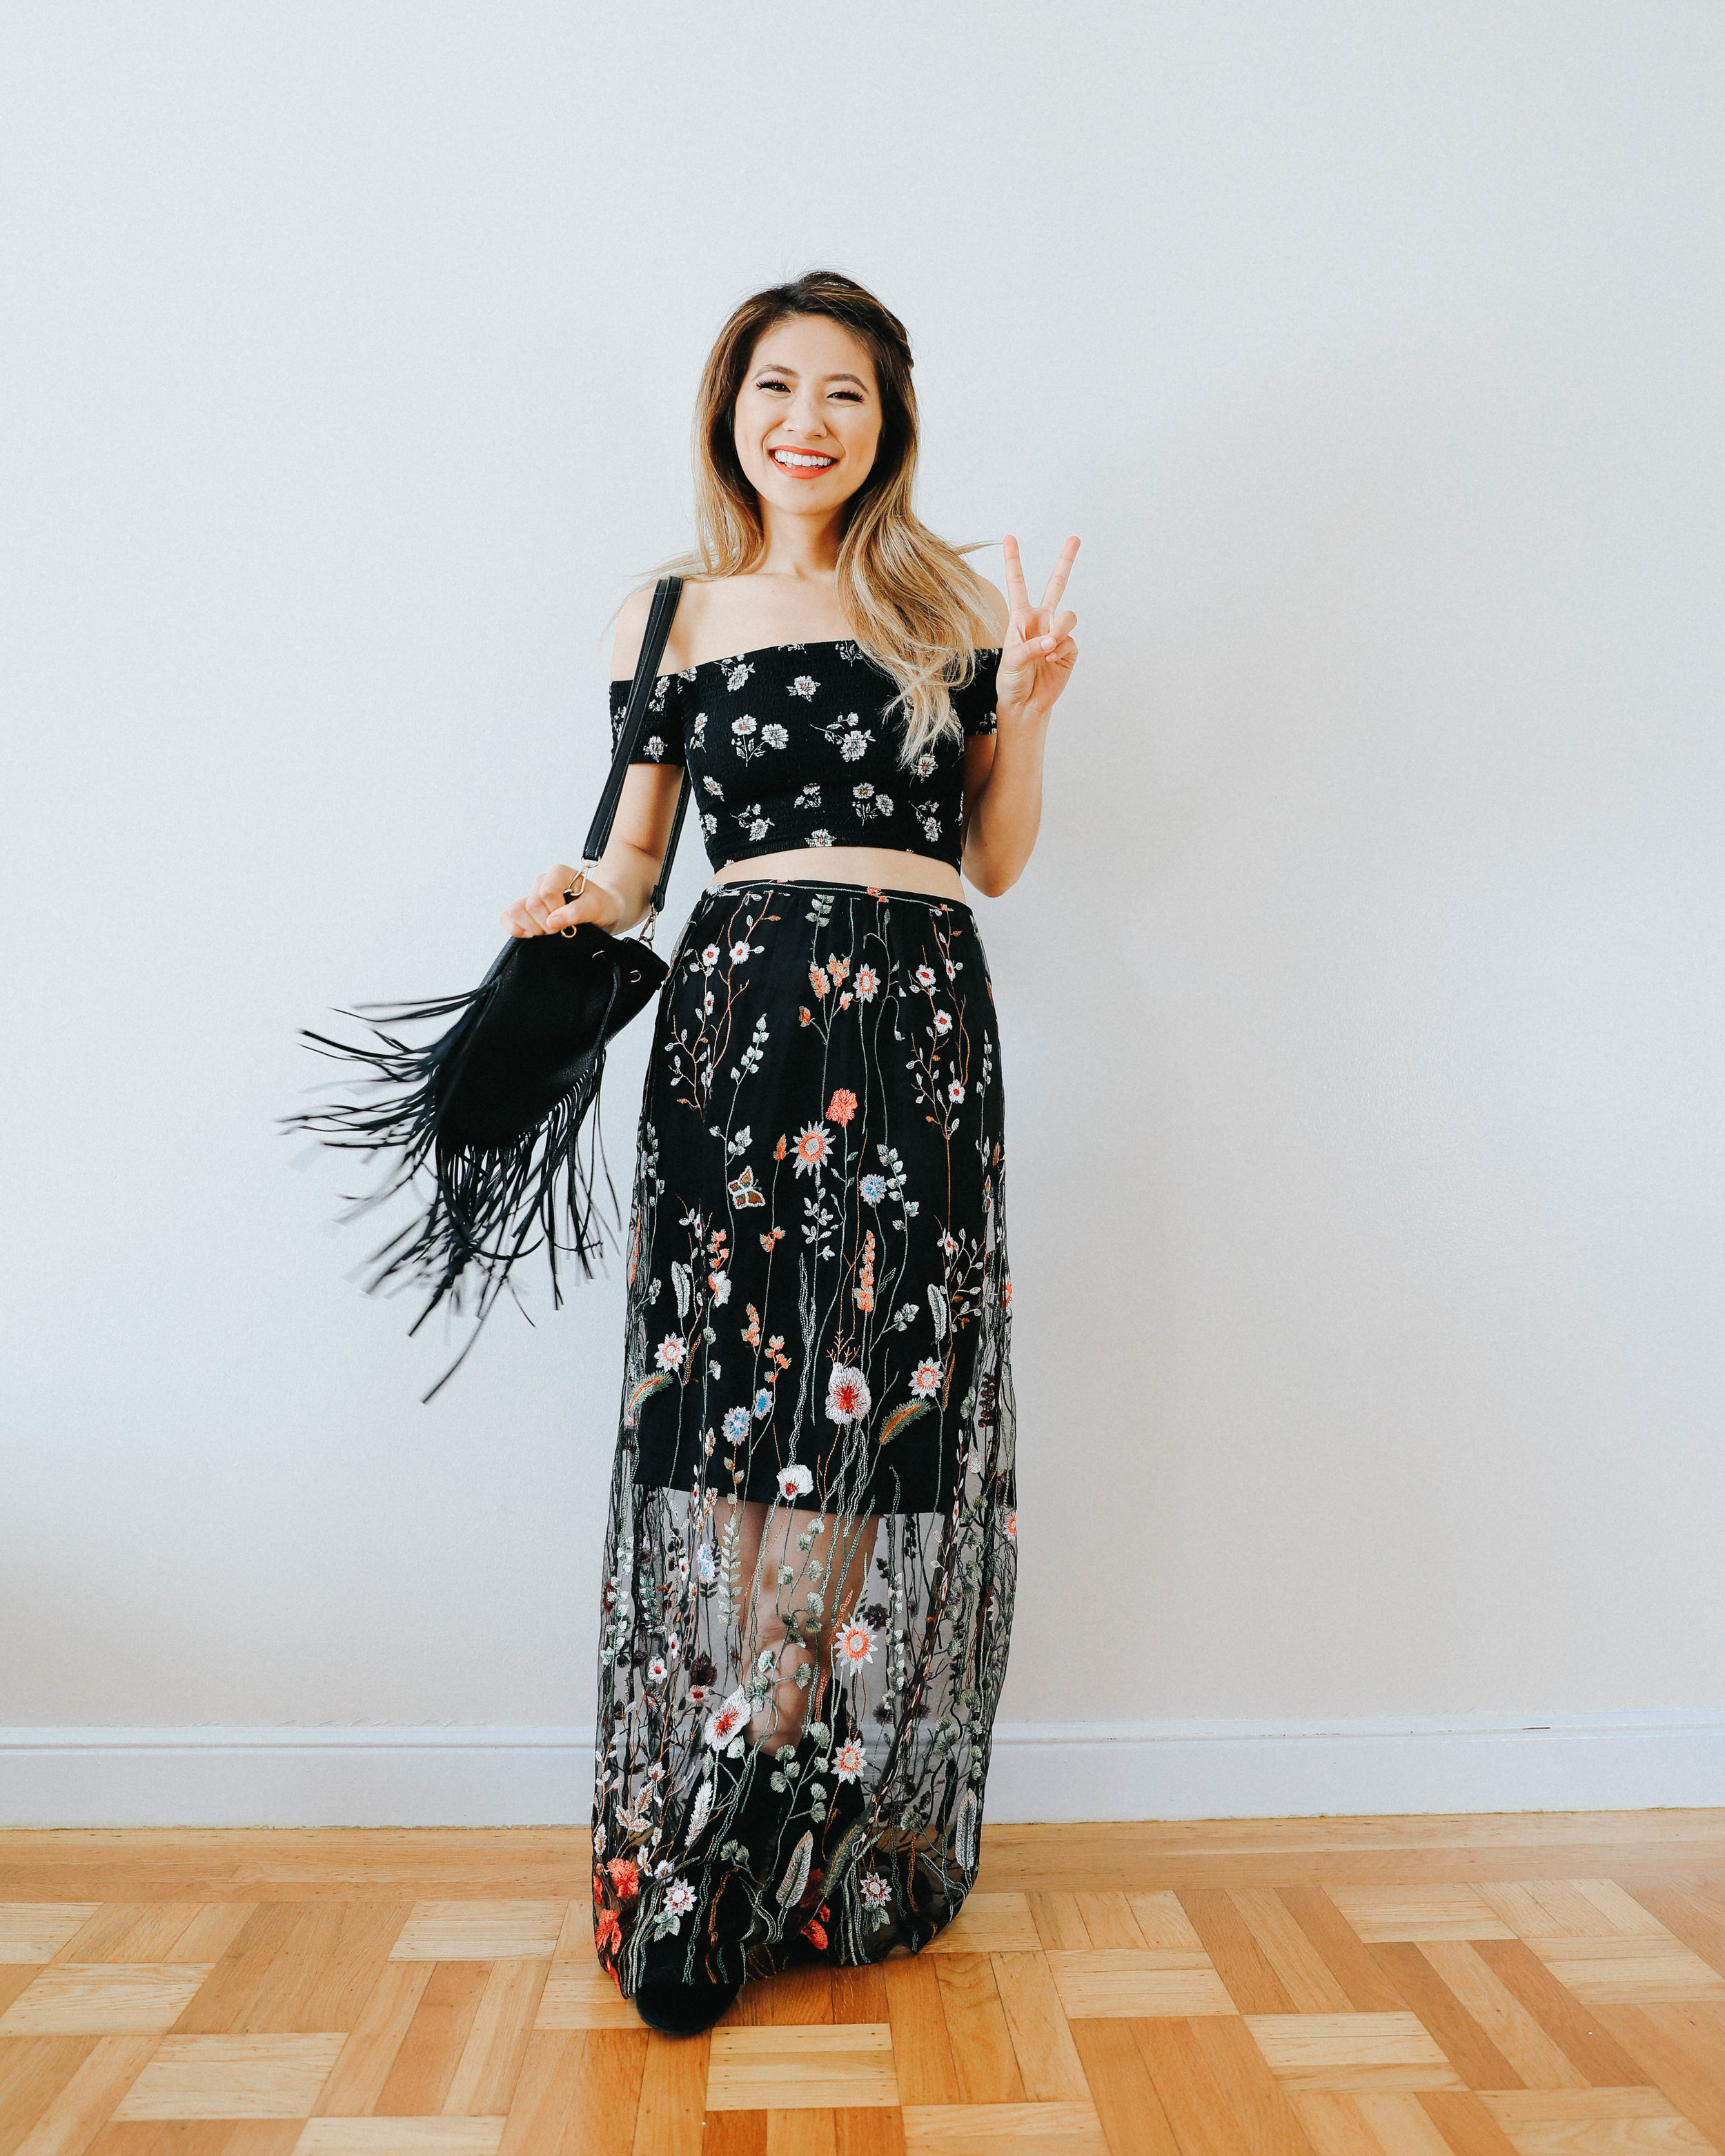 Festival Outfits - Festival season is a fun time to play with trends and make a statement. But sometimes it's hard to transition these playful outfits into every day wear. Lace, co-ord sets, florals, I mean where do I begin? Here's 7 wearable festival inspired outfit ideas to get you excited for summer!